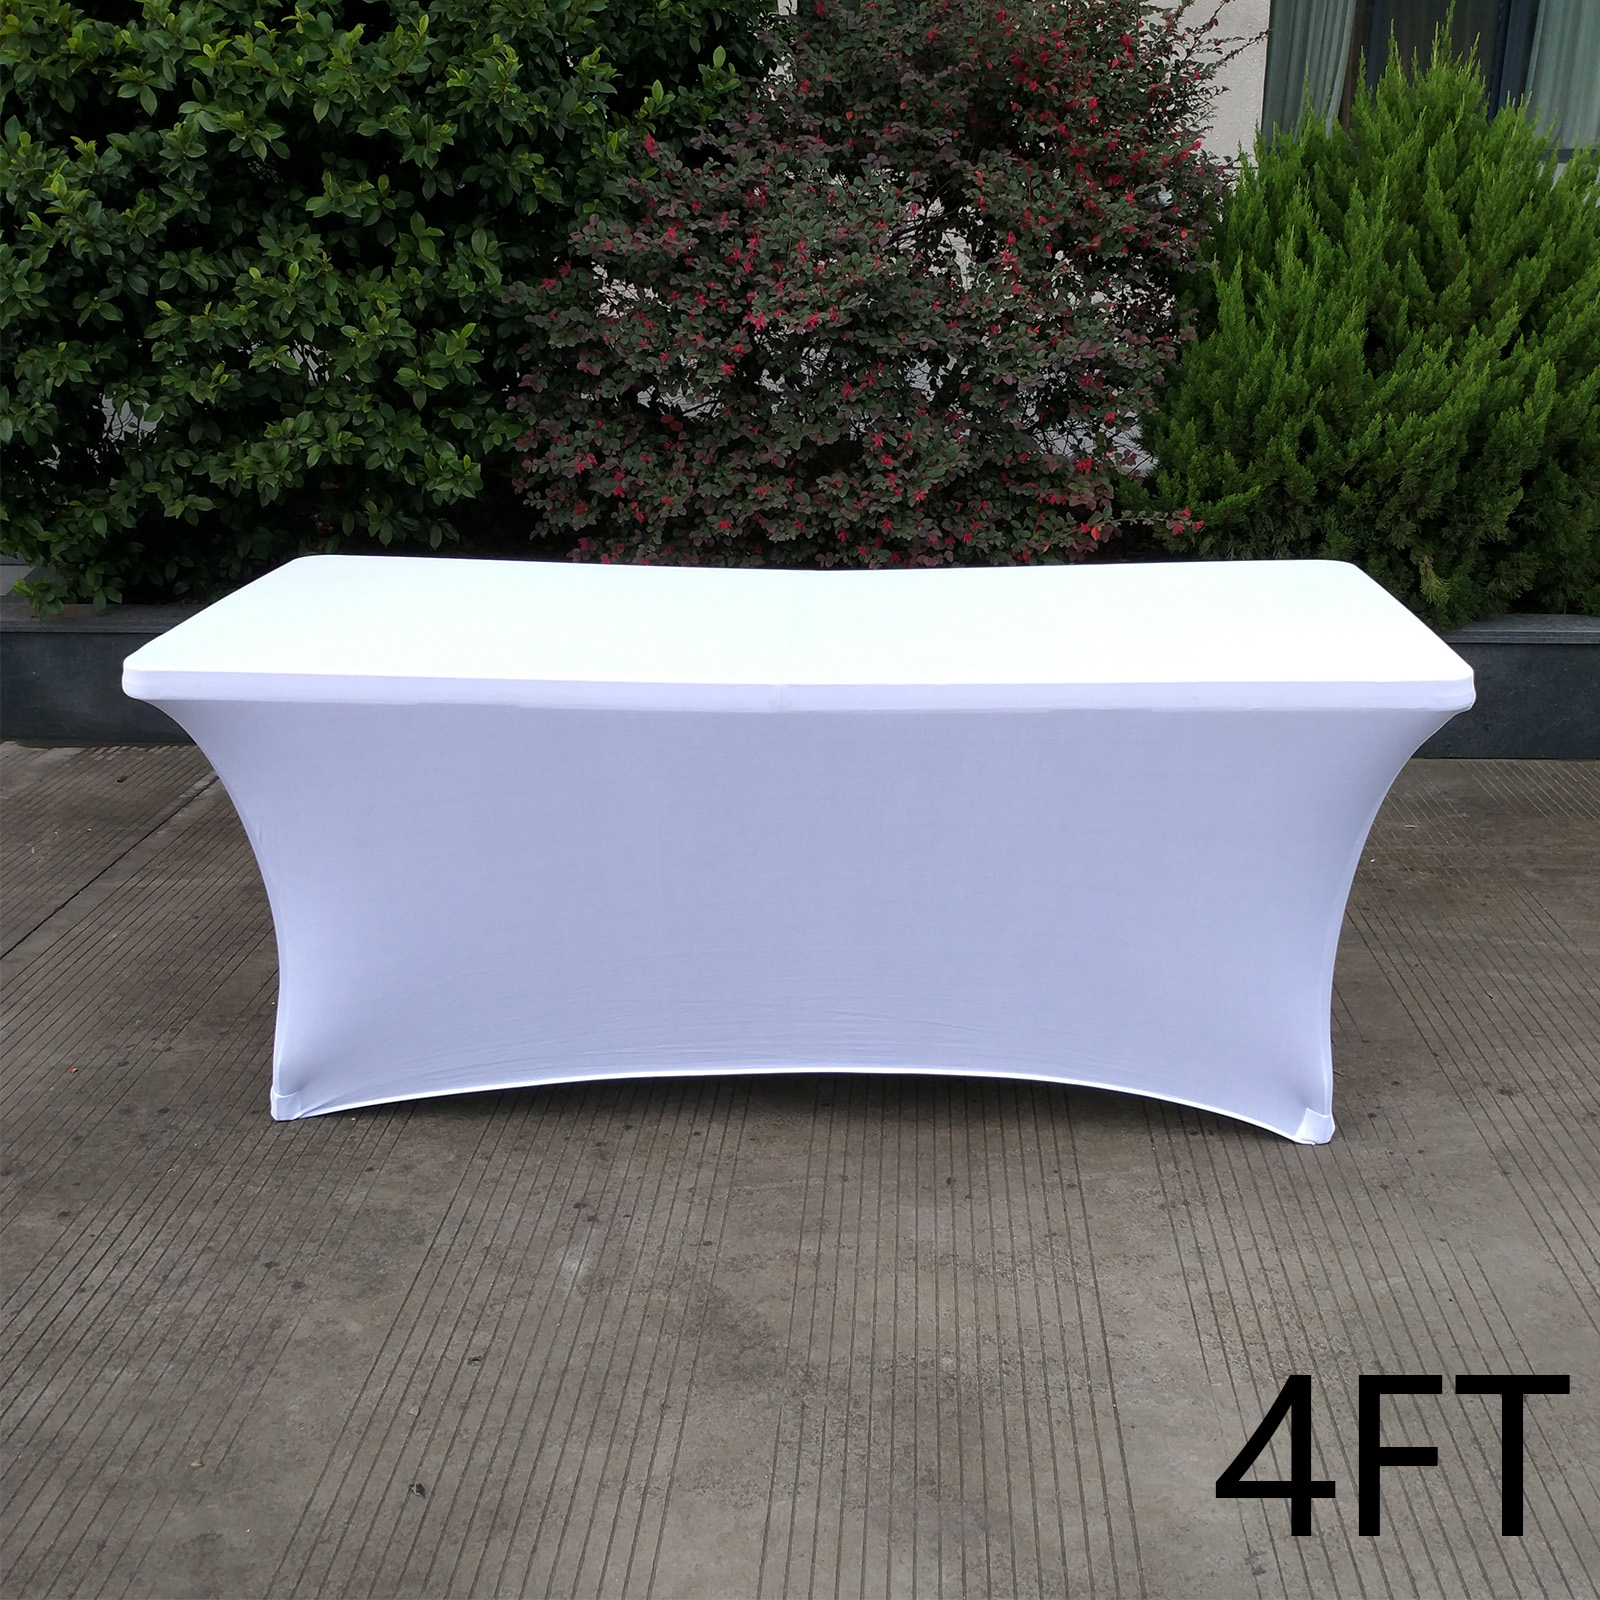 4-6FT-Rectangular-Table-Cover-Tablecloth-Spandex-Lycra-Wedding-Party-Buffet